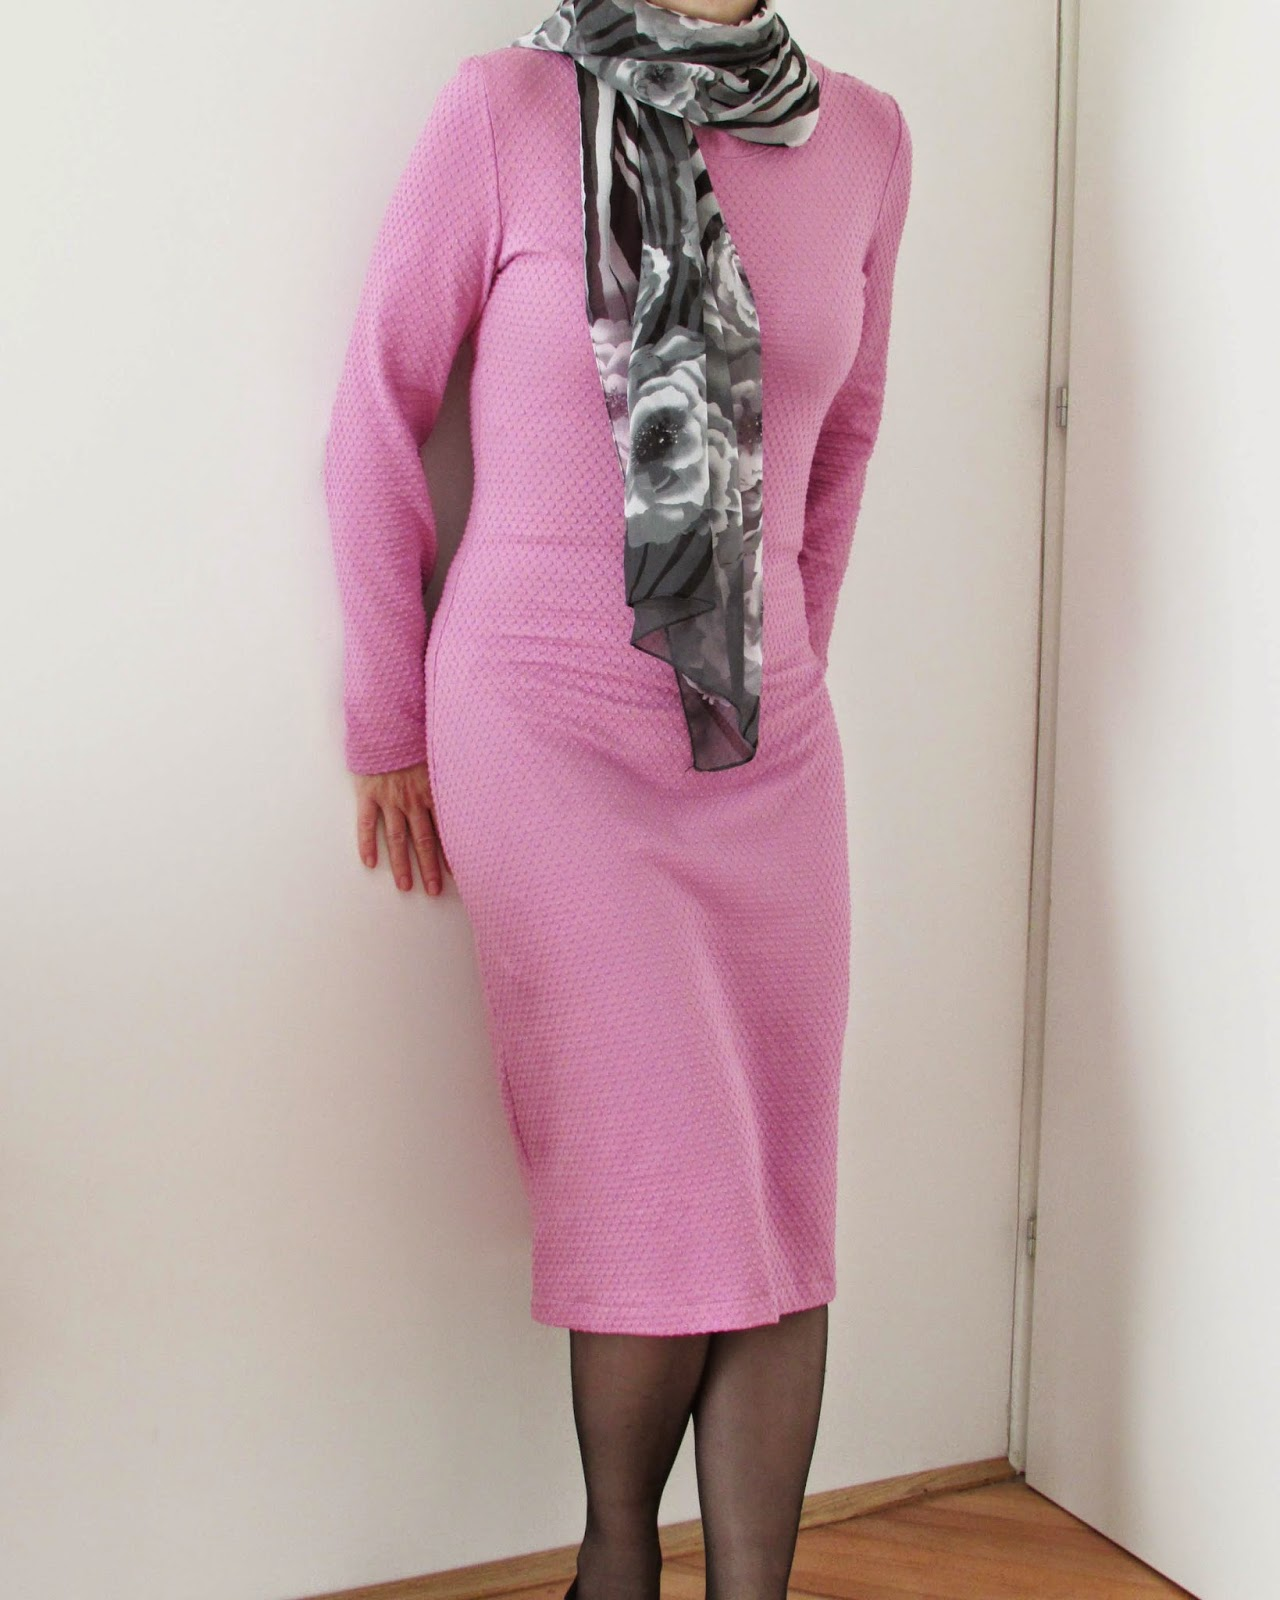 http://ladylinaland.blogspot.com/2015/01/pink-bodycon-dress.html